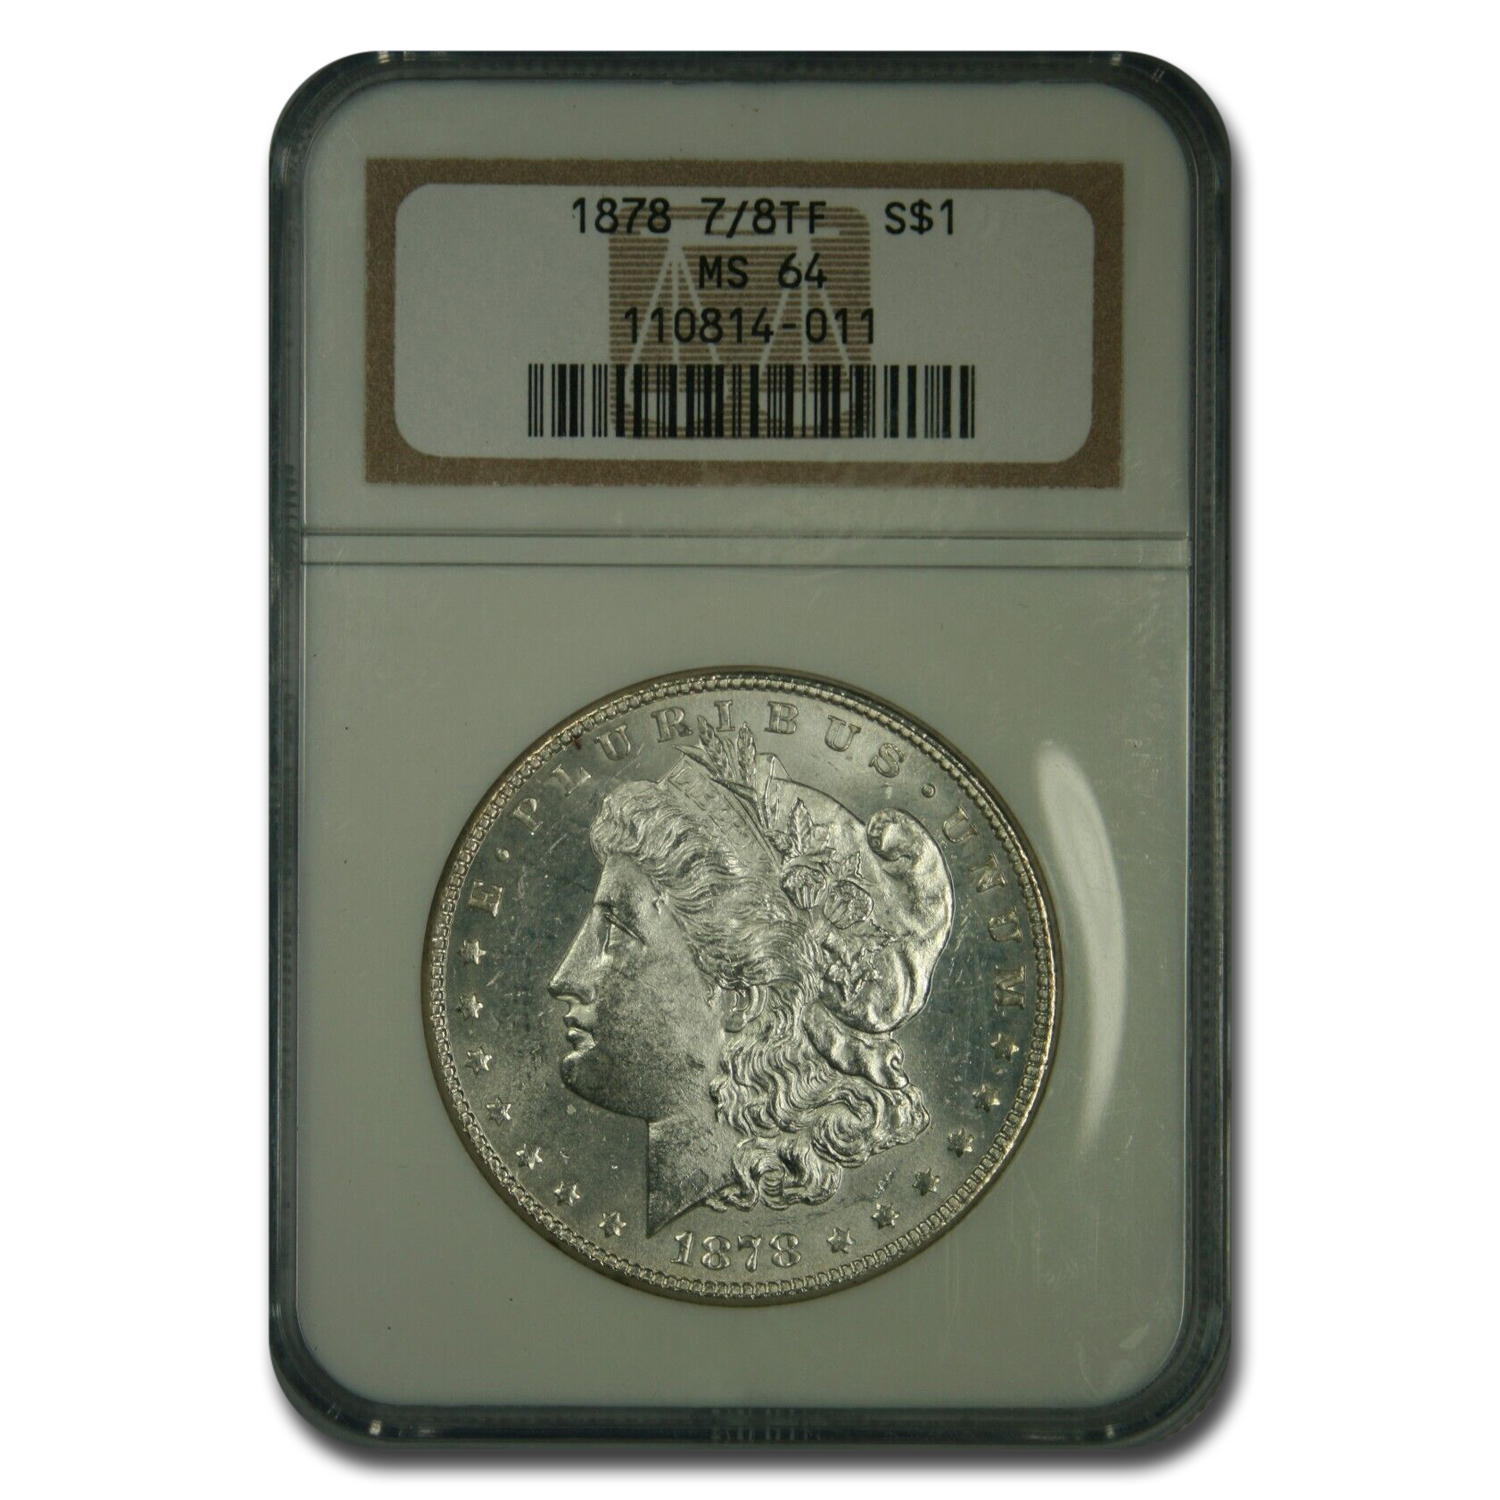 1878 Morgan Dollar 7/8 TF MS-64 NGC (Strong)